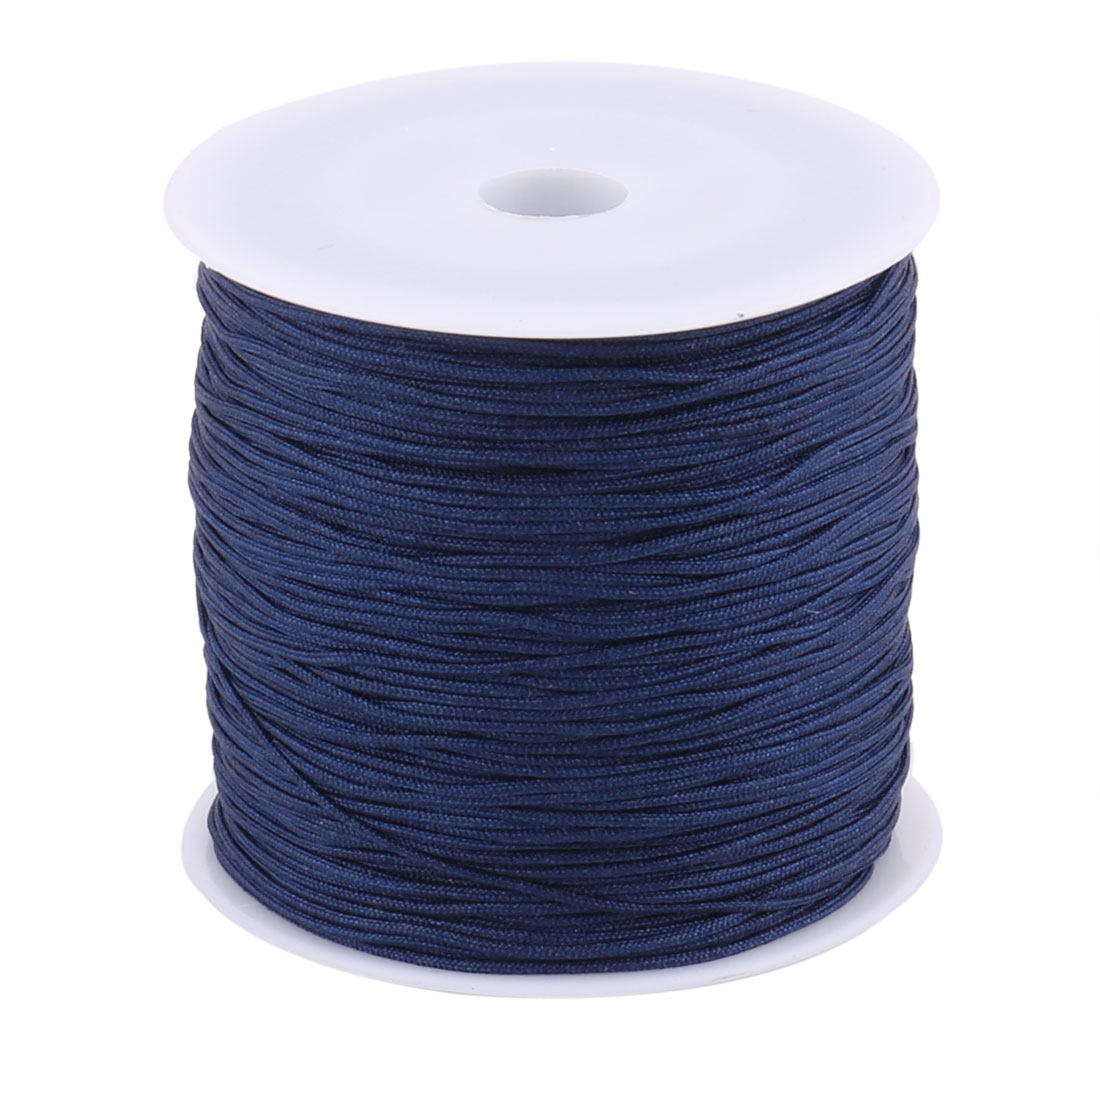 Nylon Chinese Knot DIY Craft Braided Cord String Navy Blue 0.8mm Dia 110 Yards